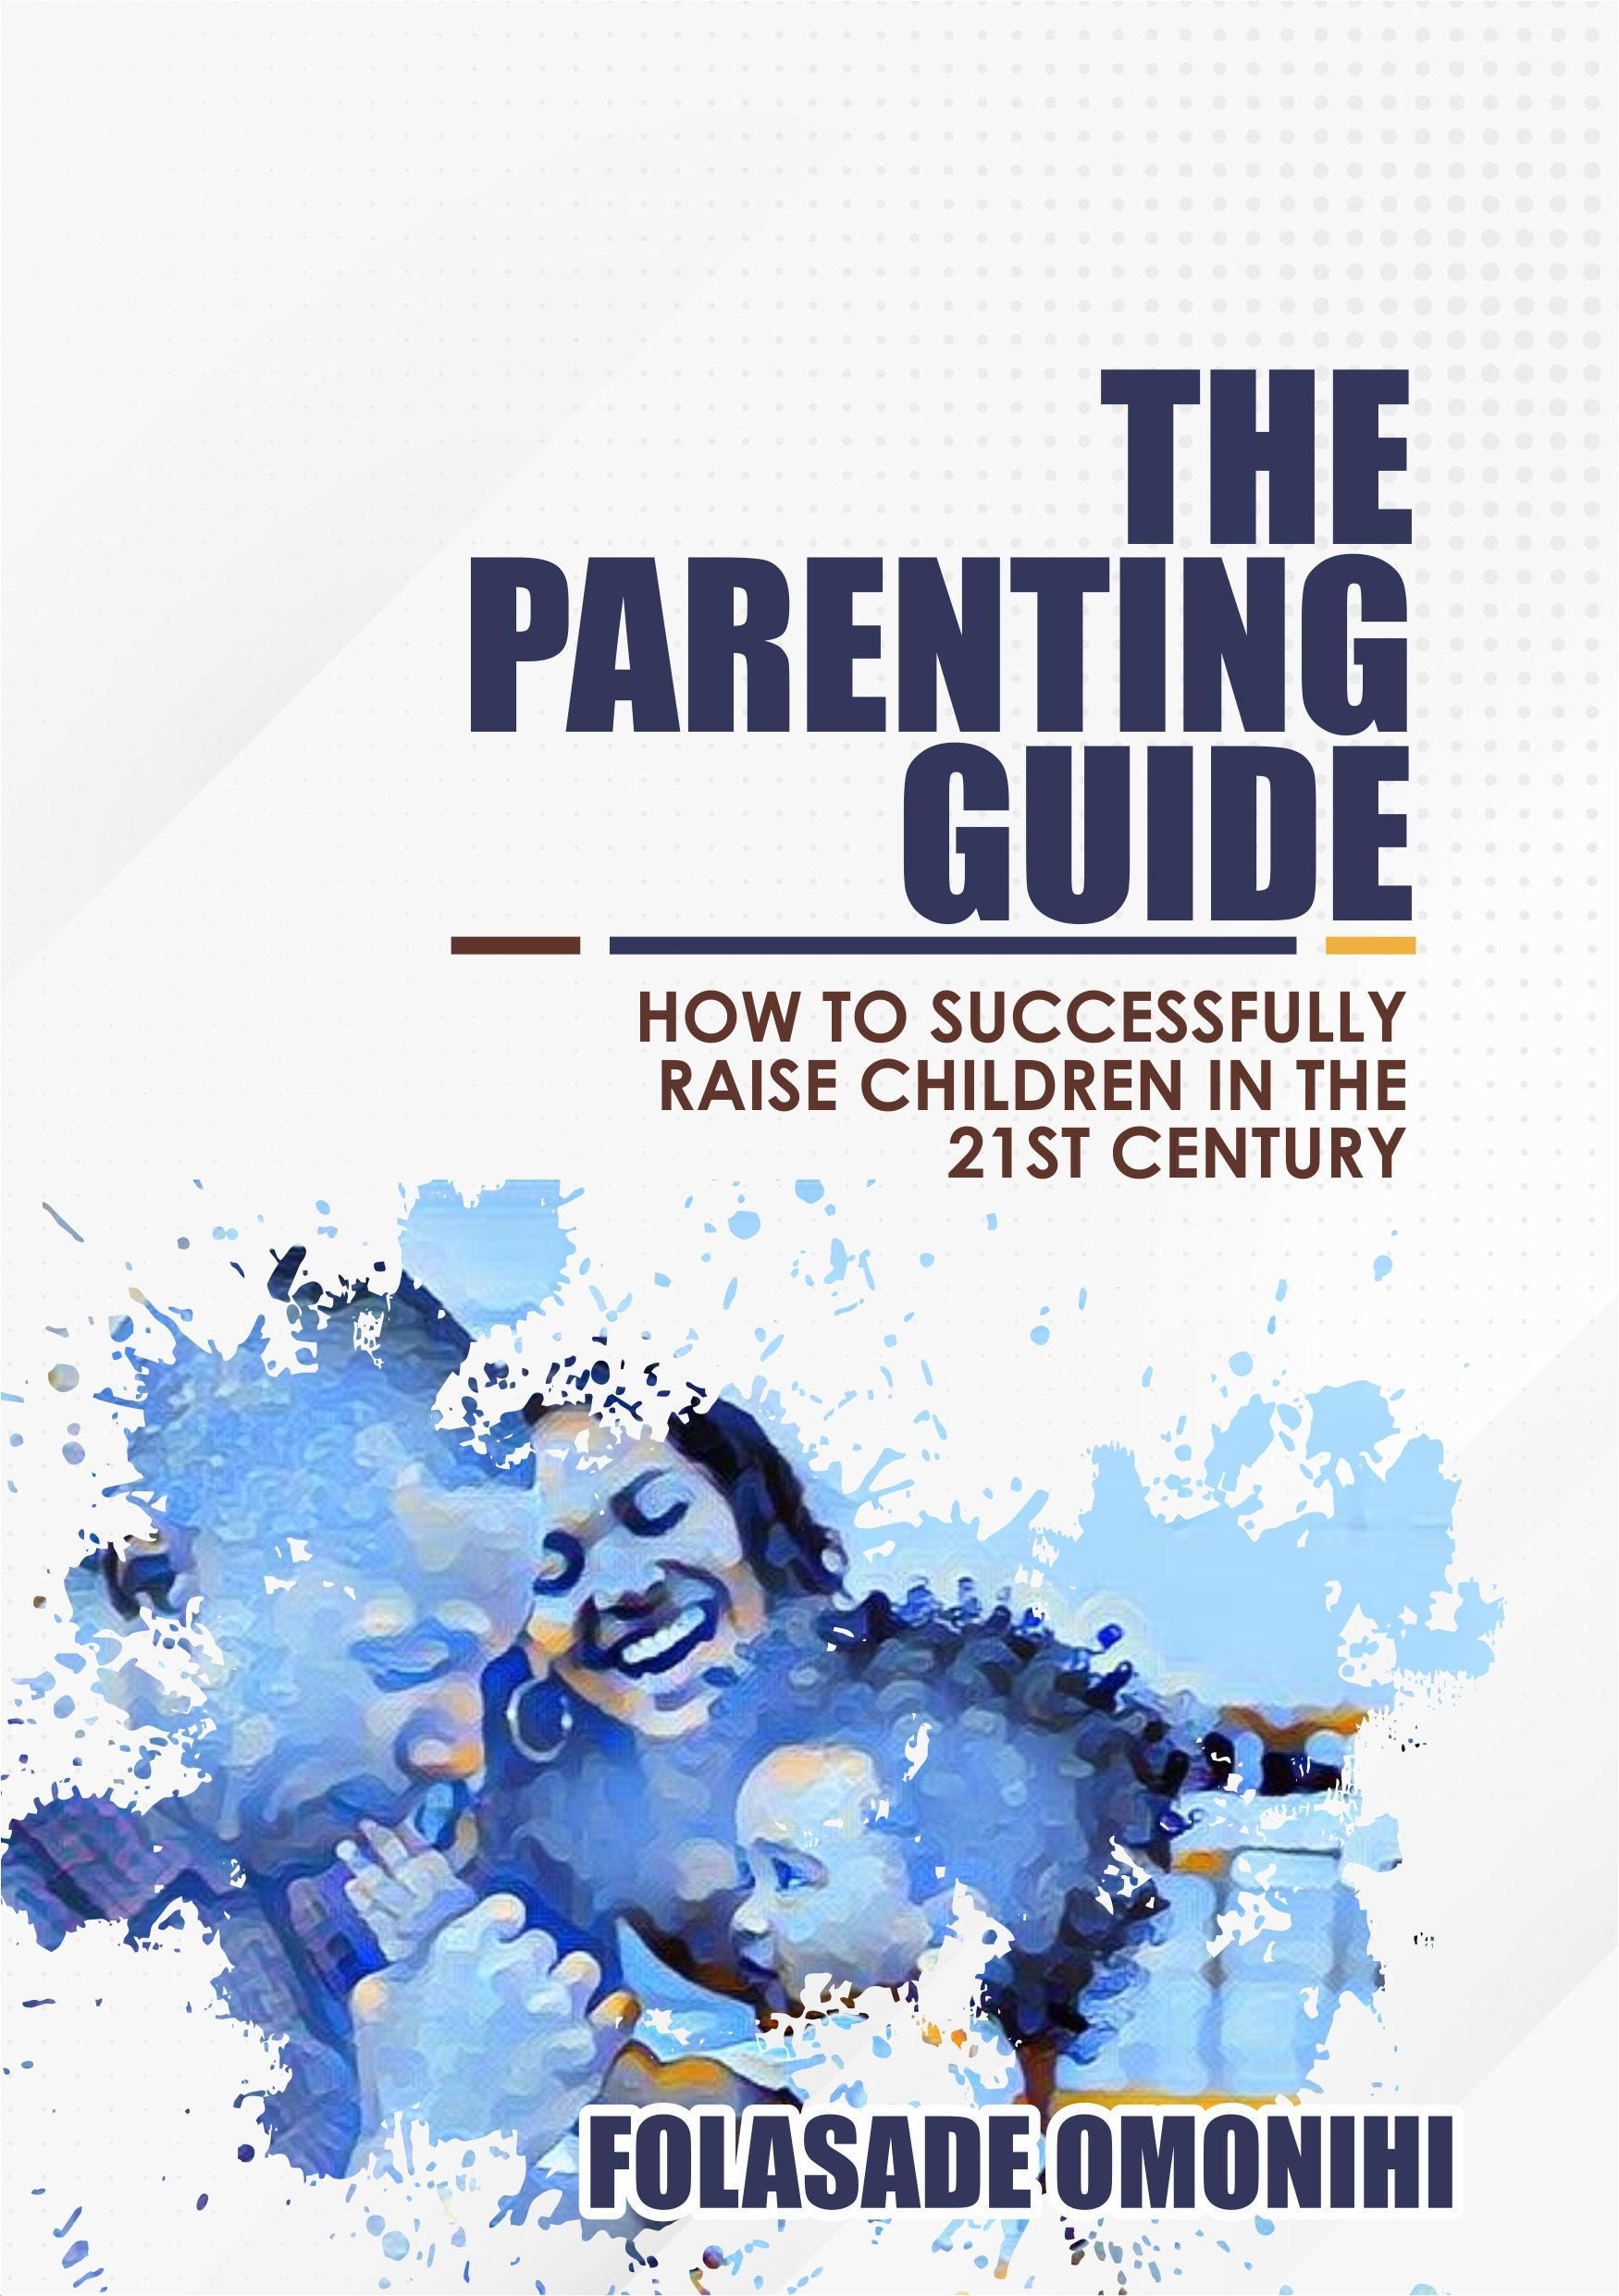 THE PARENTING GUIDE; HOW SUCCESSFULLY RAISE CHILDREN IN THE 21ST